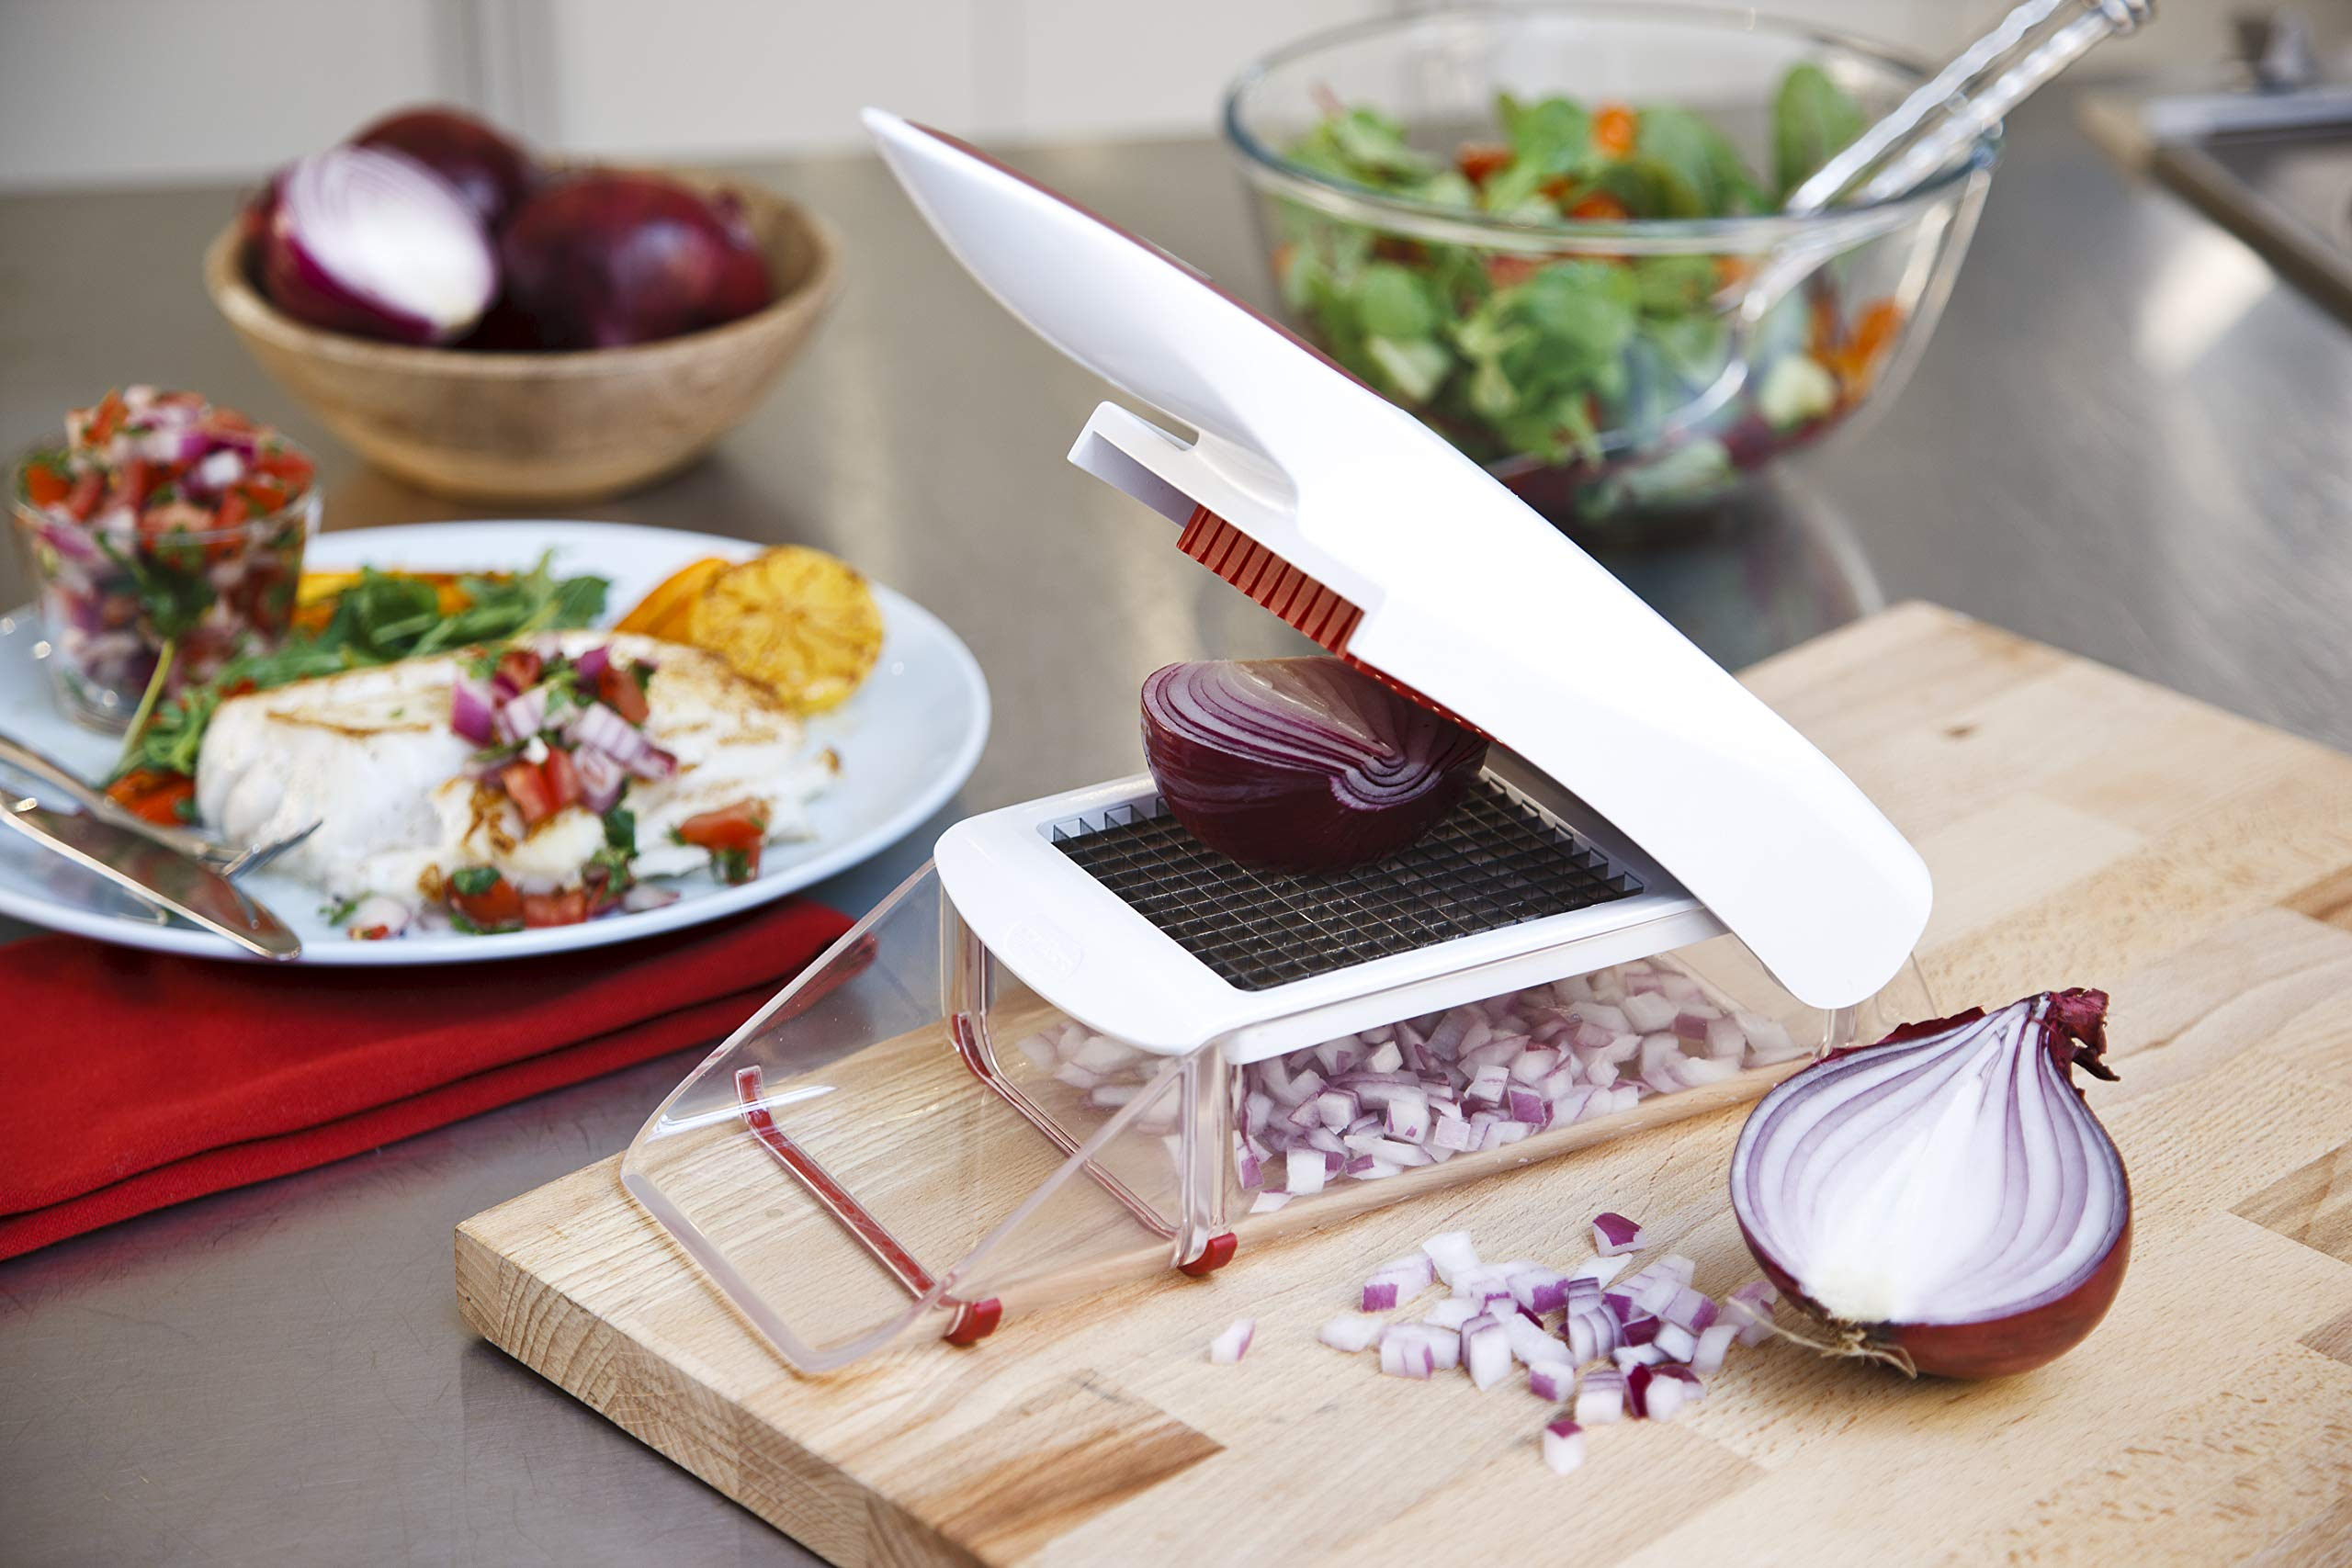 81UYzYD4SyL - Zyliss Onion Chopper, White and Red